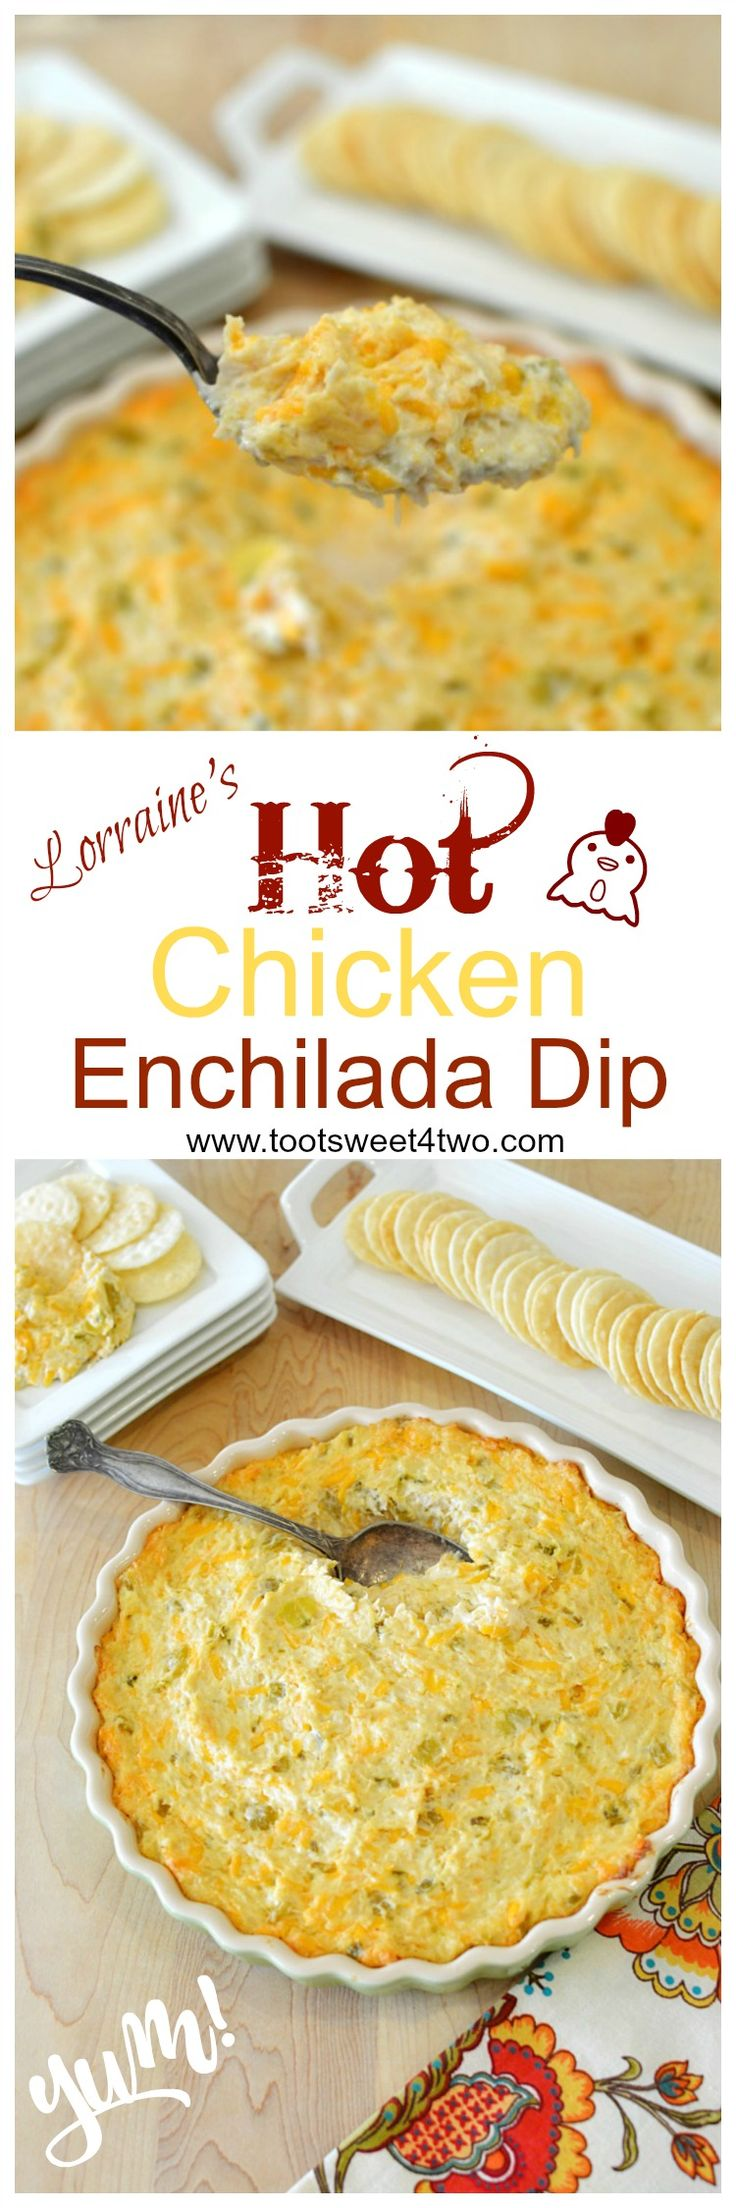 Looking for great dip recipes that are hot, easy, yummy and delicious? Look no further! Lorraine's Hot Chicken Enchilada Dip is one of those dip recipes that's gone in a flash! Guaranteed! Creamy and cheesy with a slight piquant bite from the green chilies and jalapeno, this Mexican-inspired appetizer dip is a keeper! One of the most popular dip recipes on my blog, this hot and cheesy chicken enchilada dip is also one of the best dips for parties because it is so incredibly easy to make…